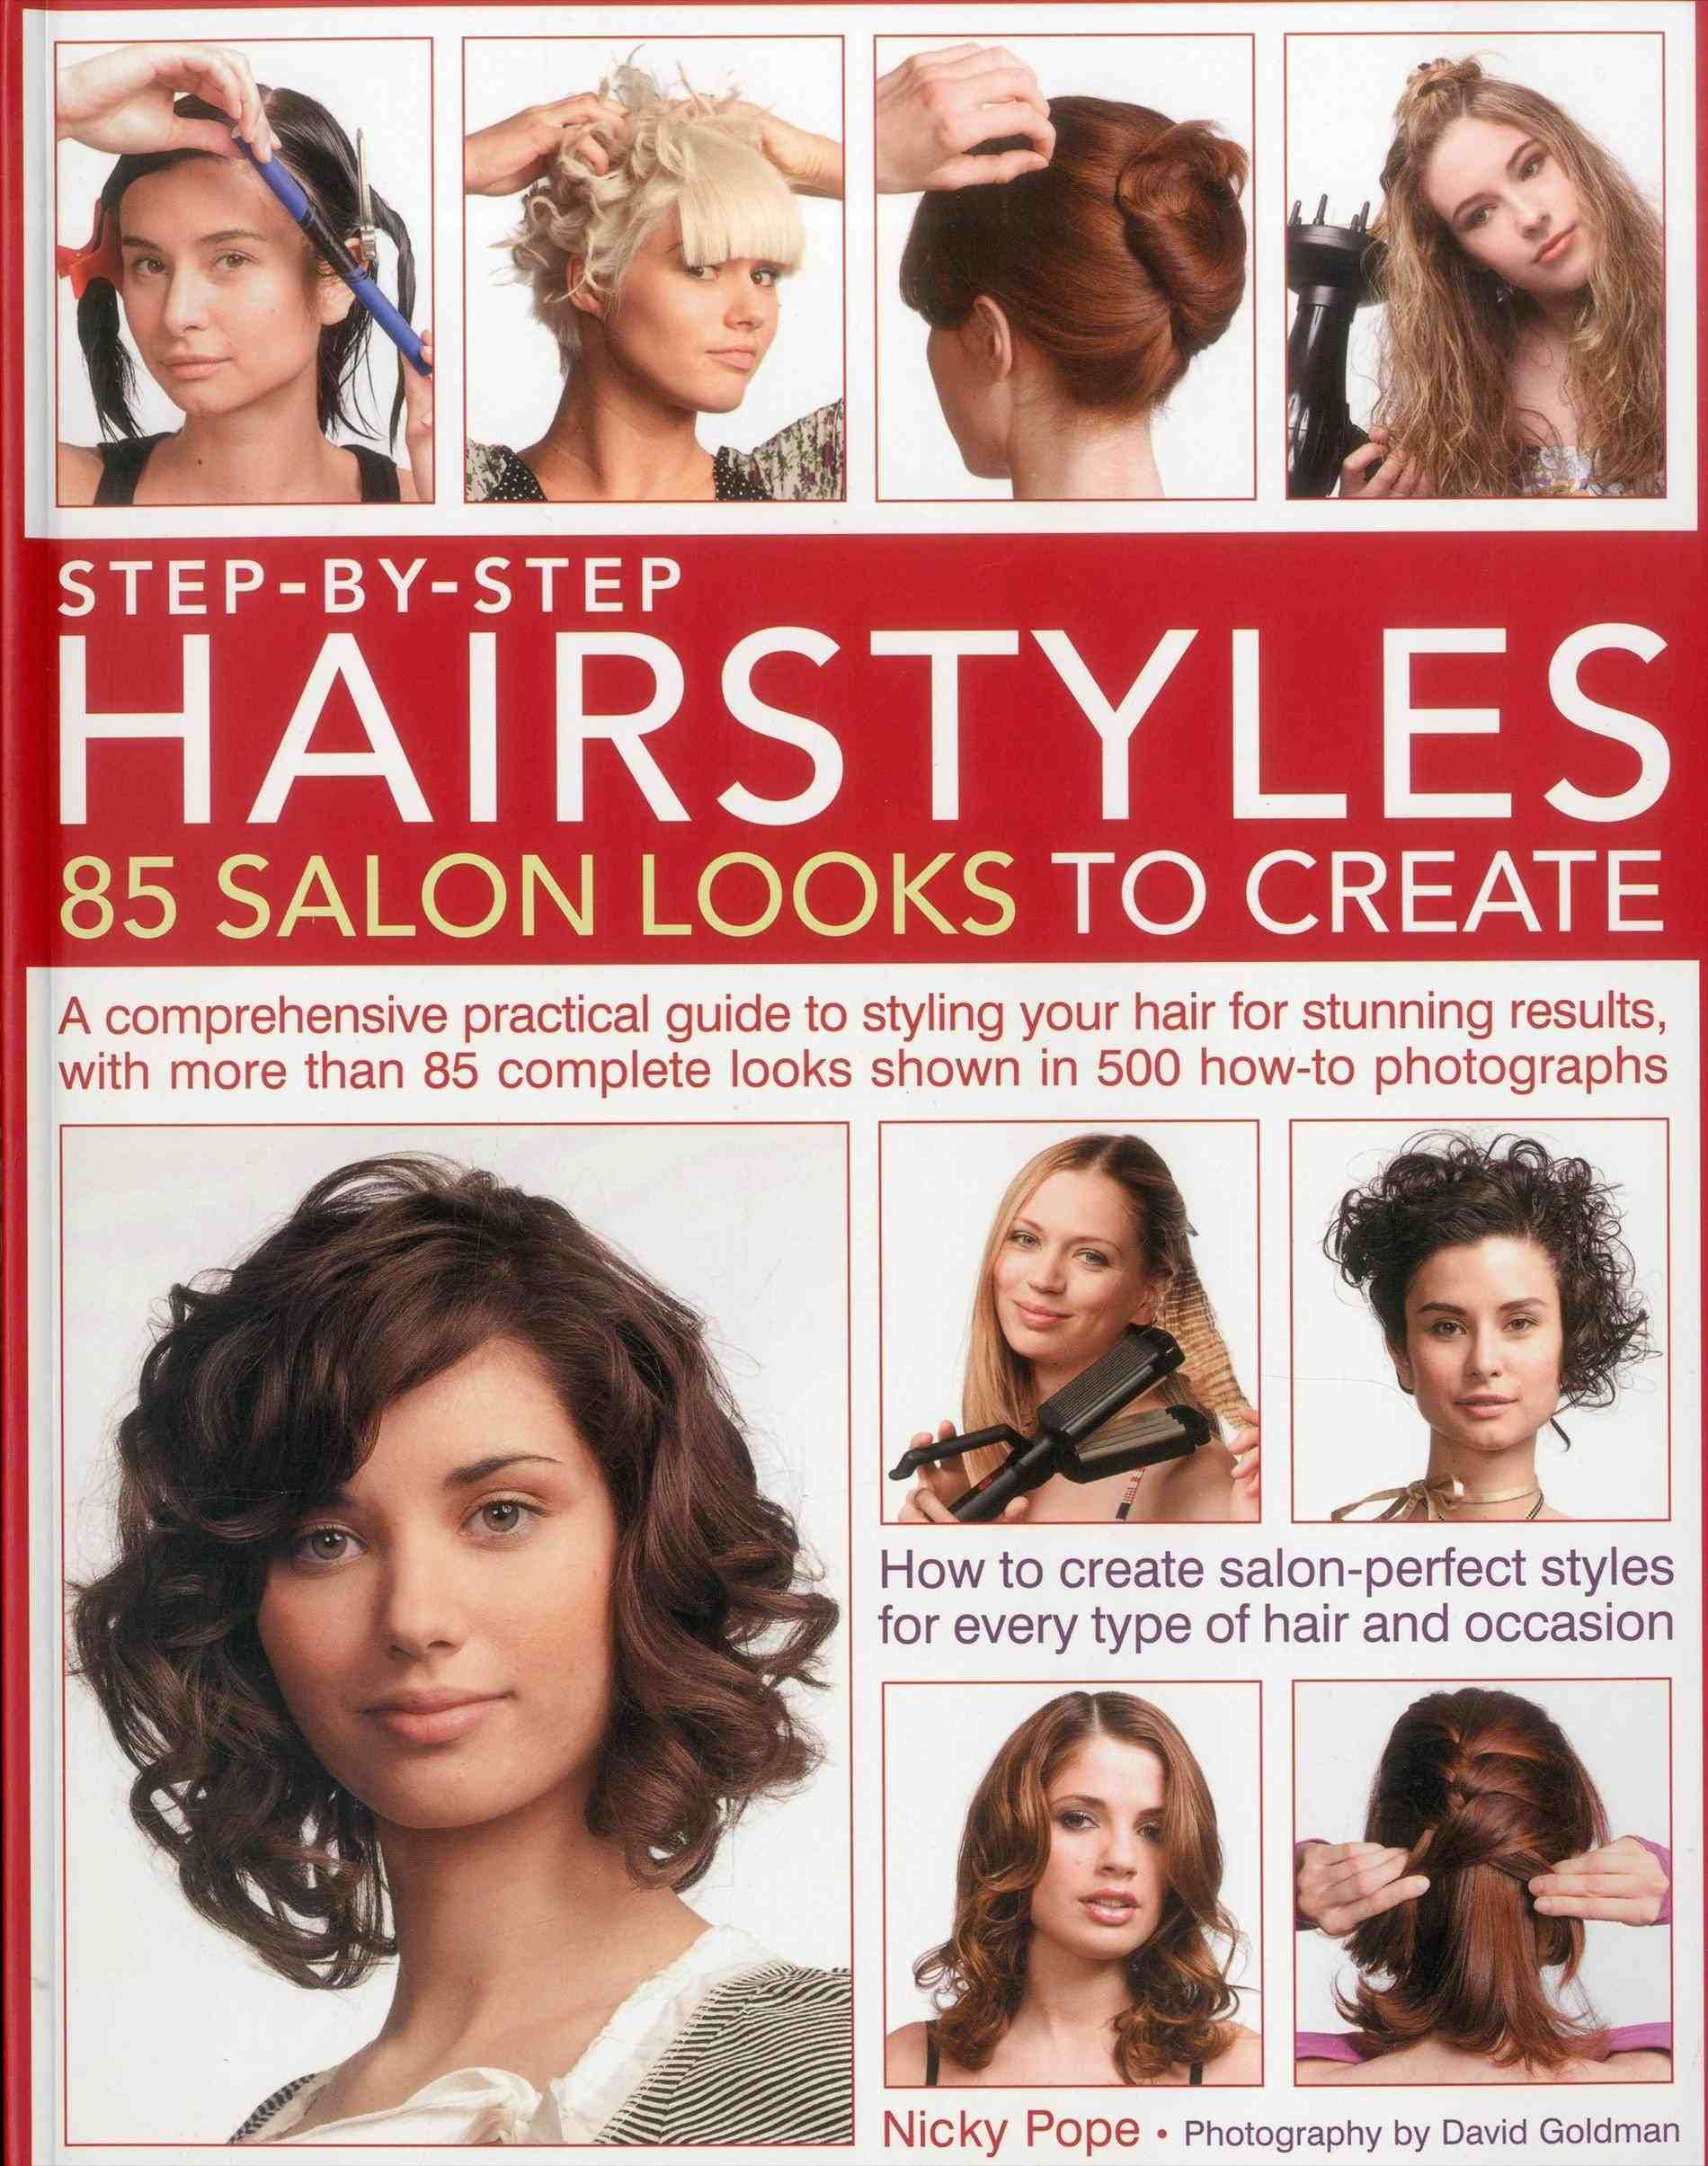 Balayagehair Club Nbspthis Website Is For Sale Nbspbalayagehair Resources And Information Step By Step Hairstyles Hairstyle Books Hair Styles